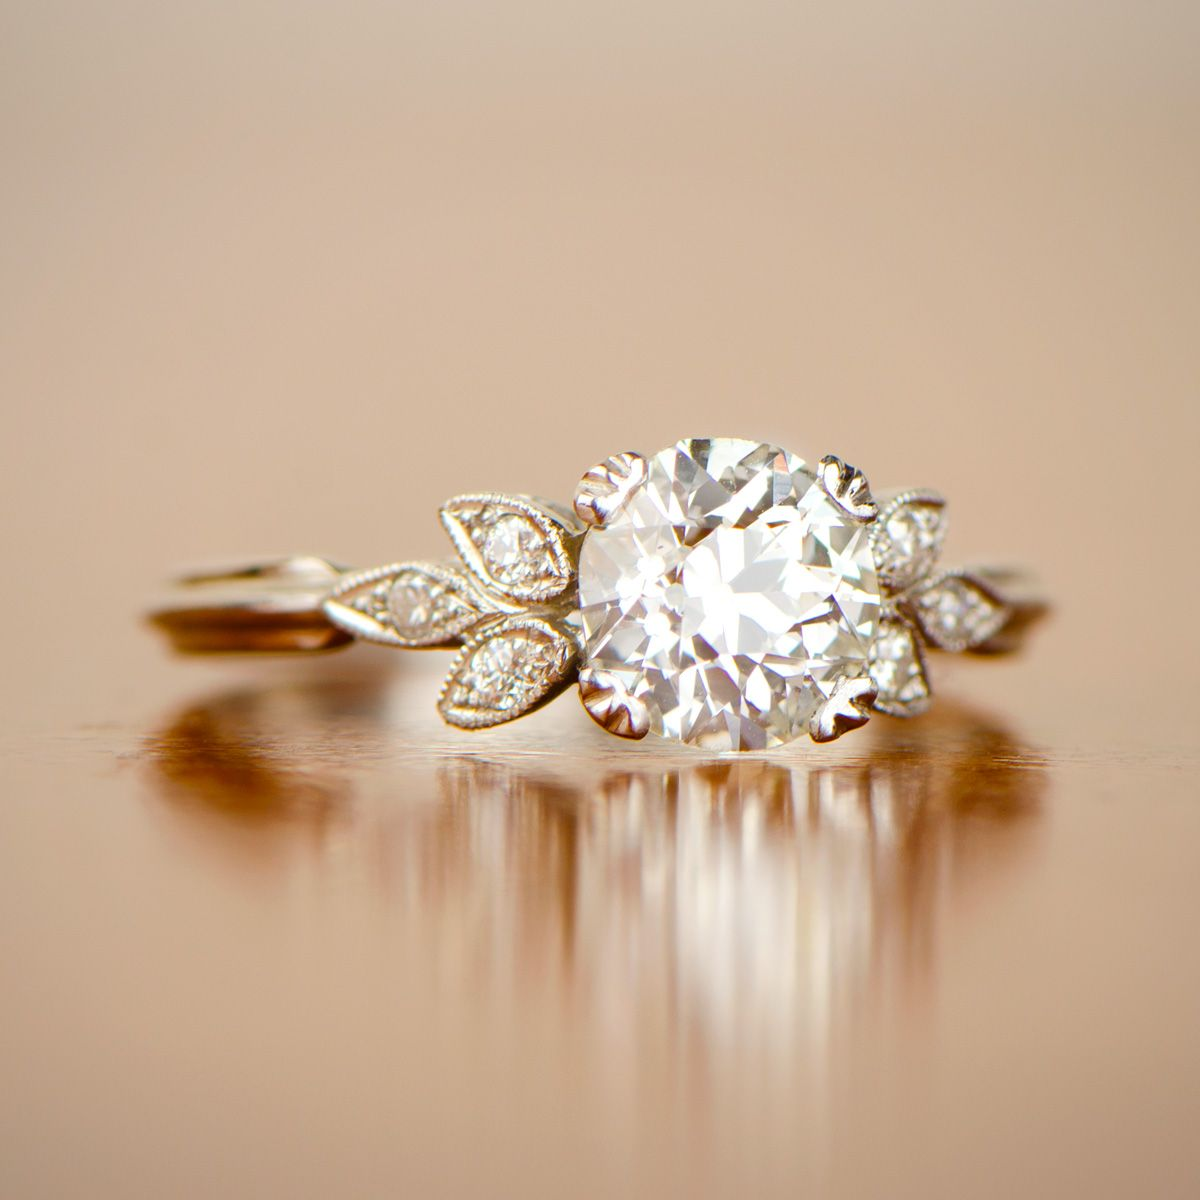 Old euro diamond engagement ring floral motif jewelry collection